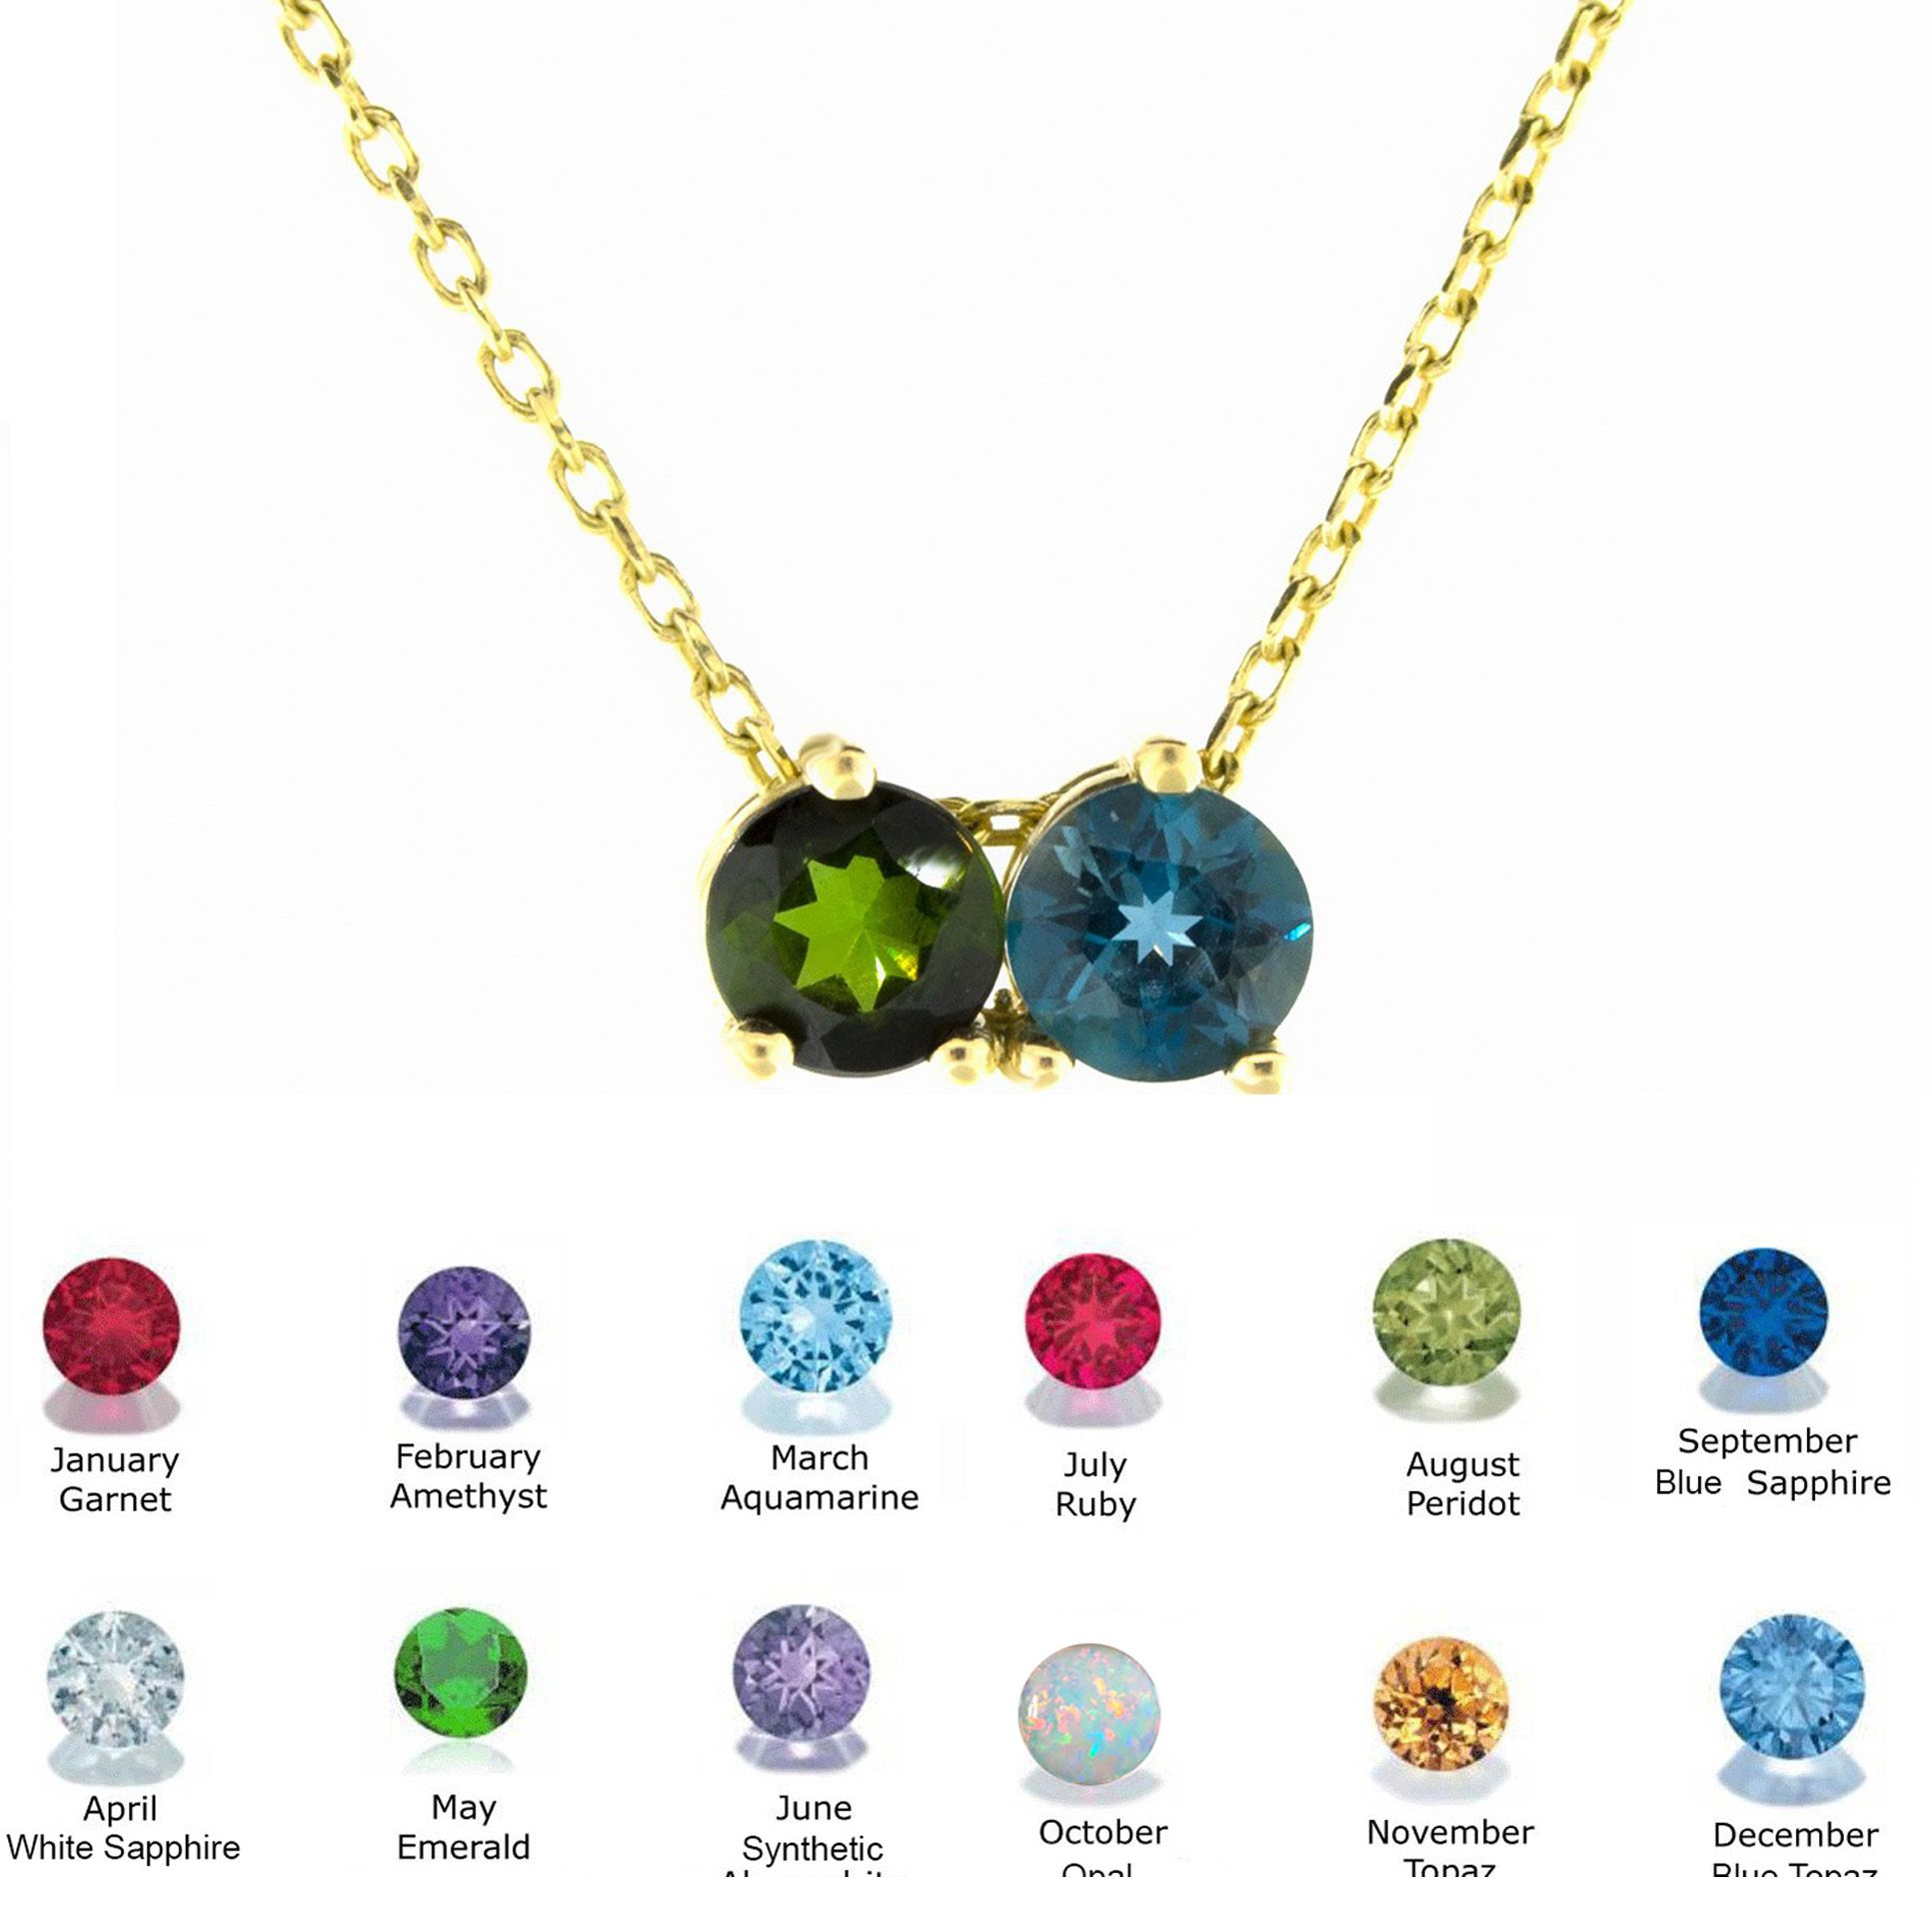 14k Gold Birthstone Necklace All Months Sarkisians Jewelry Gold Birthstone Necklace Birthstone Necklace Necklace